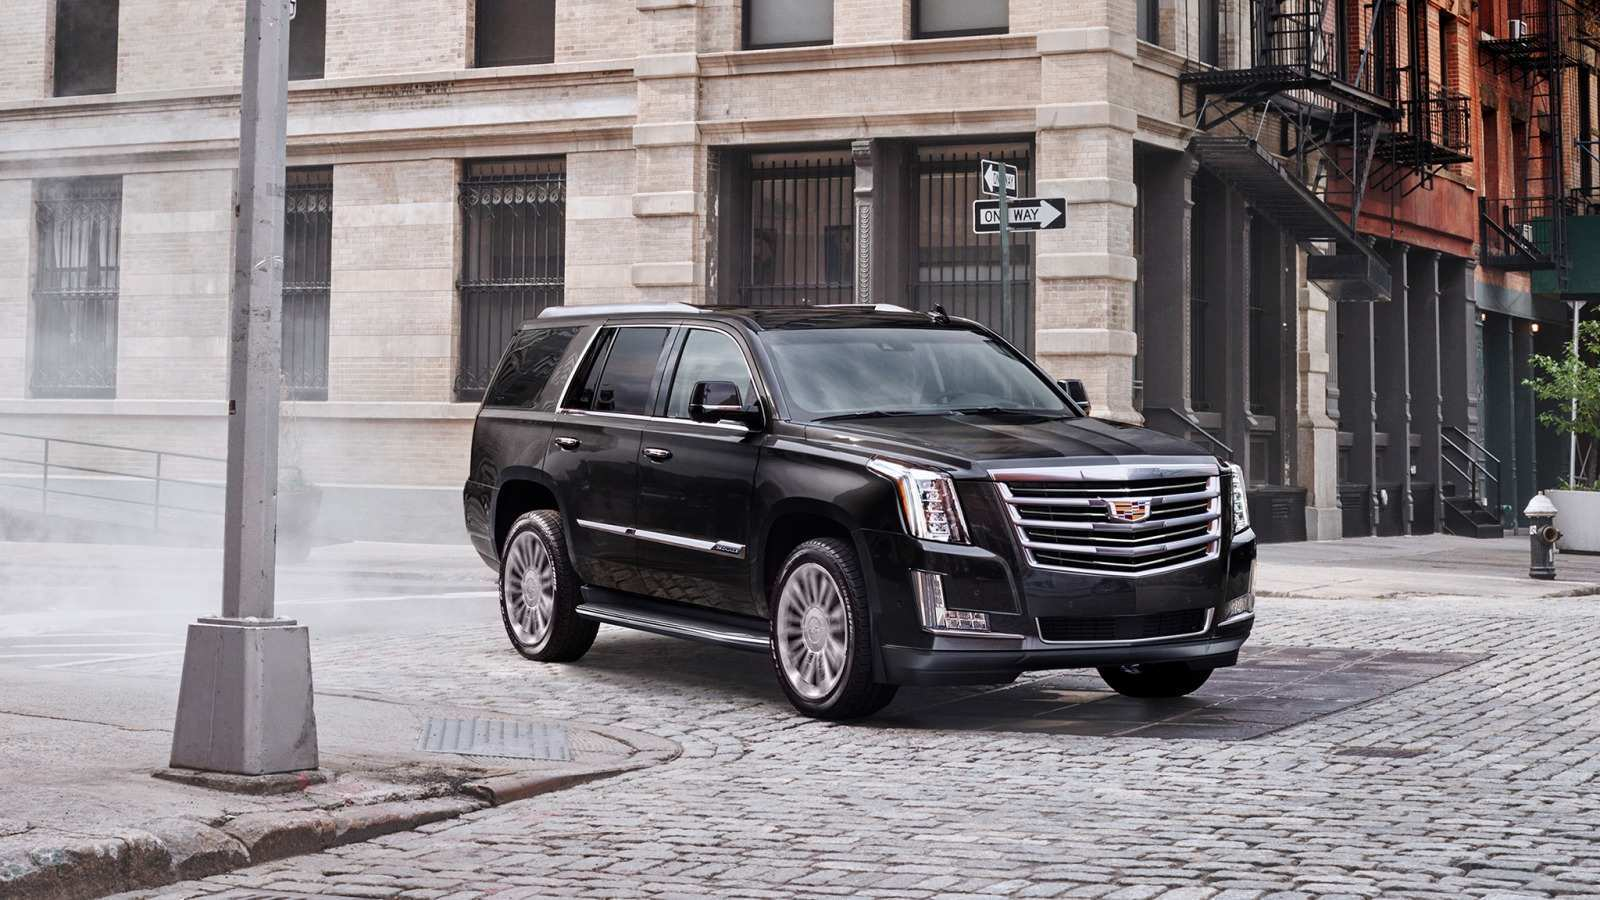 30 Great New 2019 Cadillac Escalade Build New Review Review for New 2019 Cadillac Escalade Build New Review